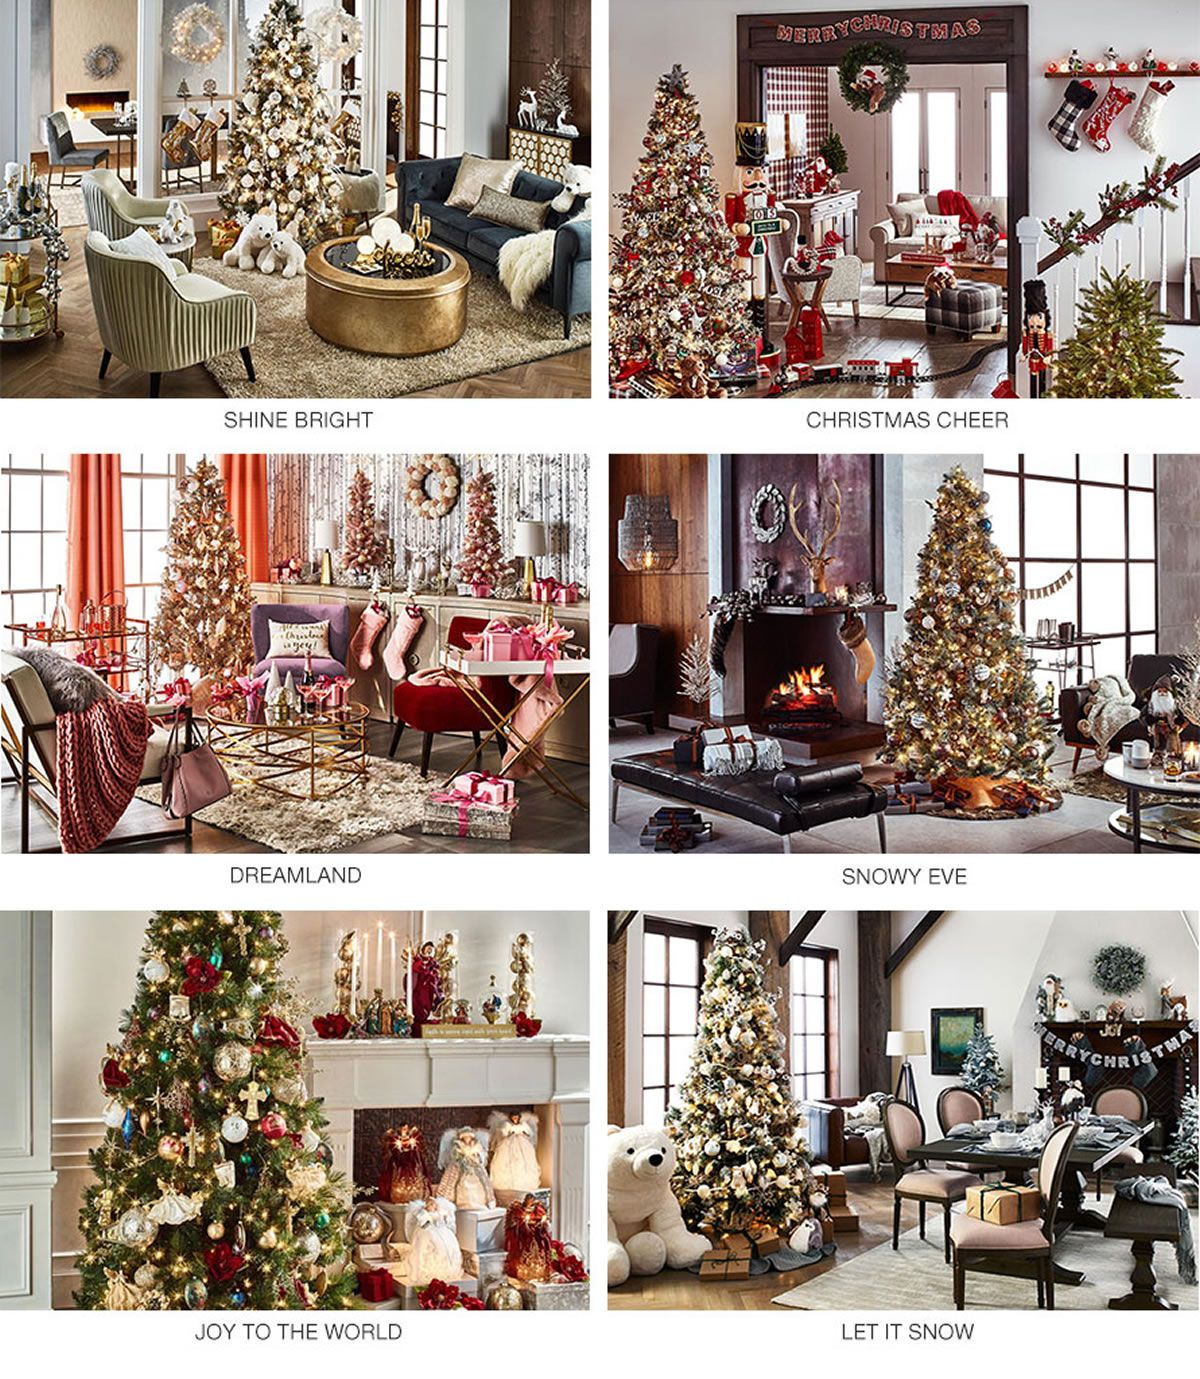 shine bright christmas cheer dreamland snowy eve joy to the world - Christmas Decoration Catalogs